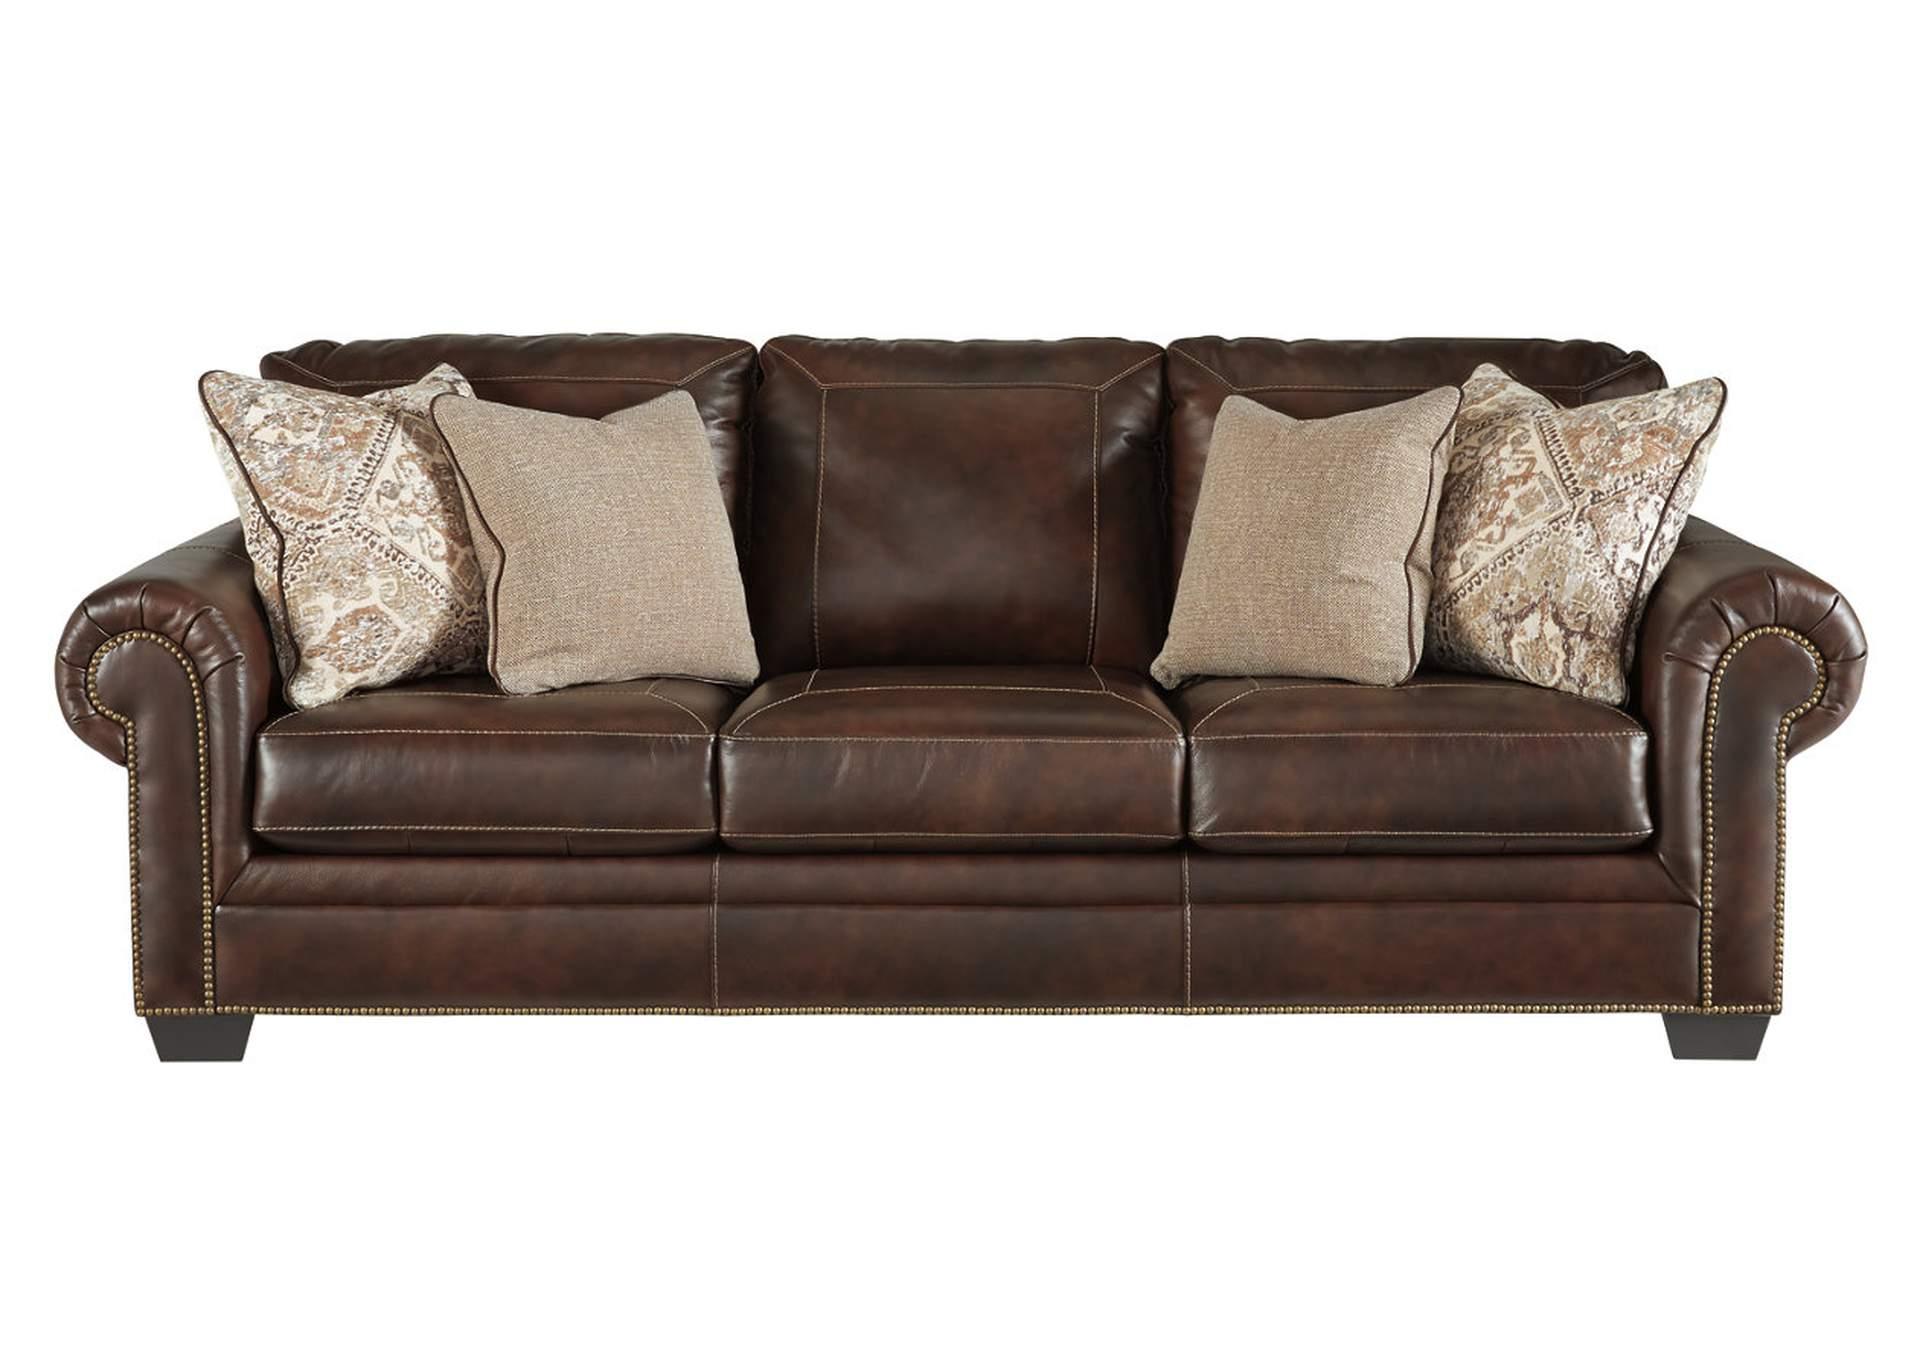 Roleson Walnut Sofa,Signature Design By Ashley